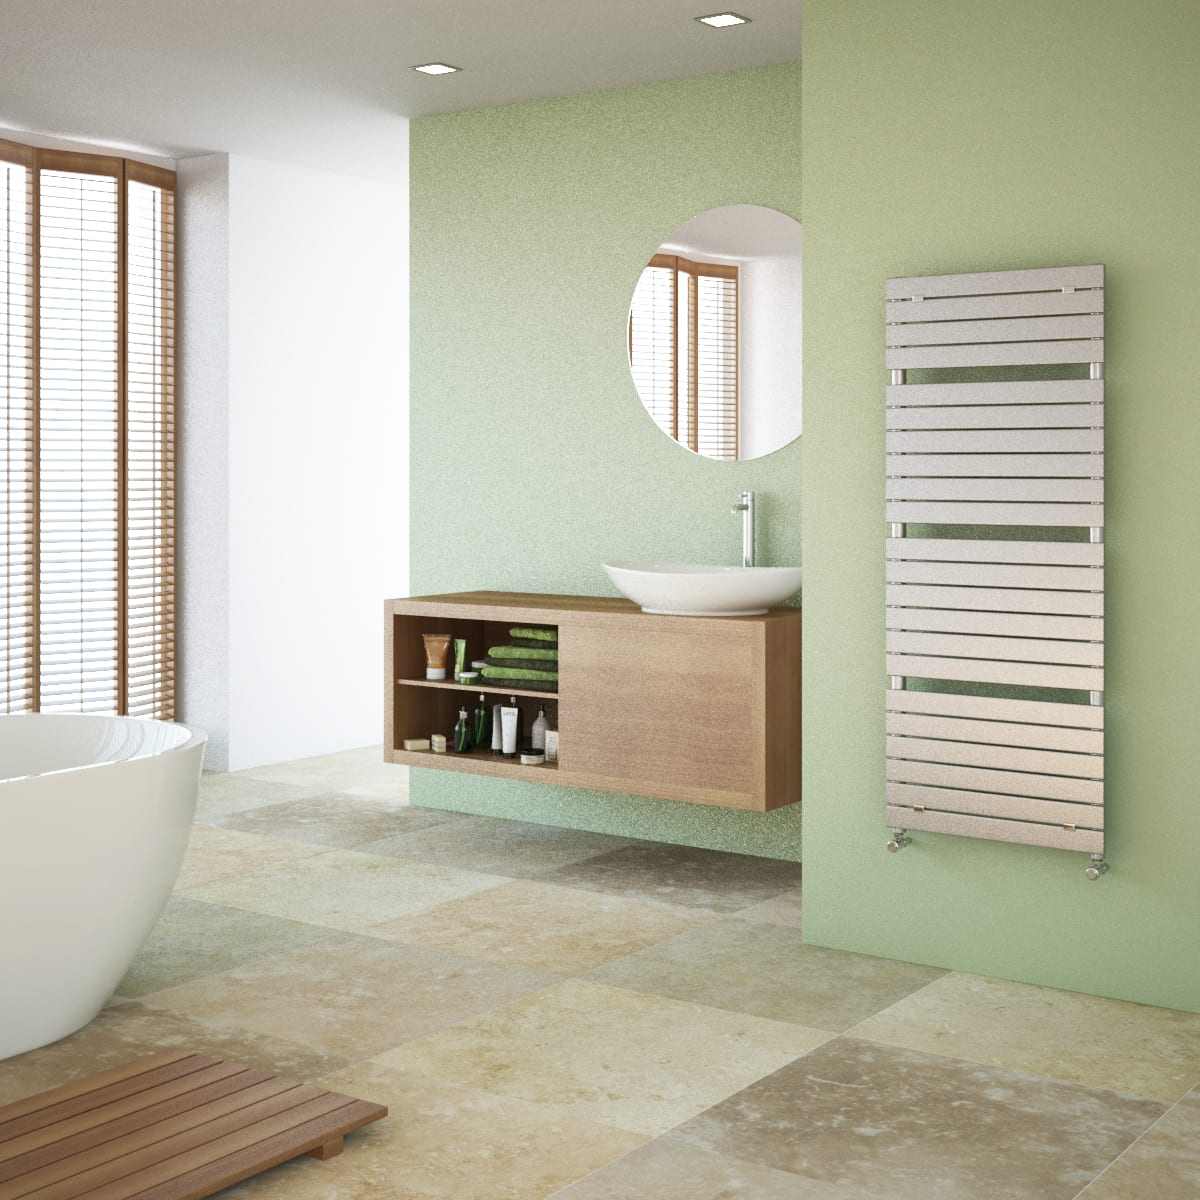 Concord Towel Rails From Stelrad